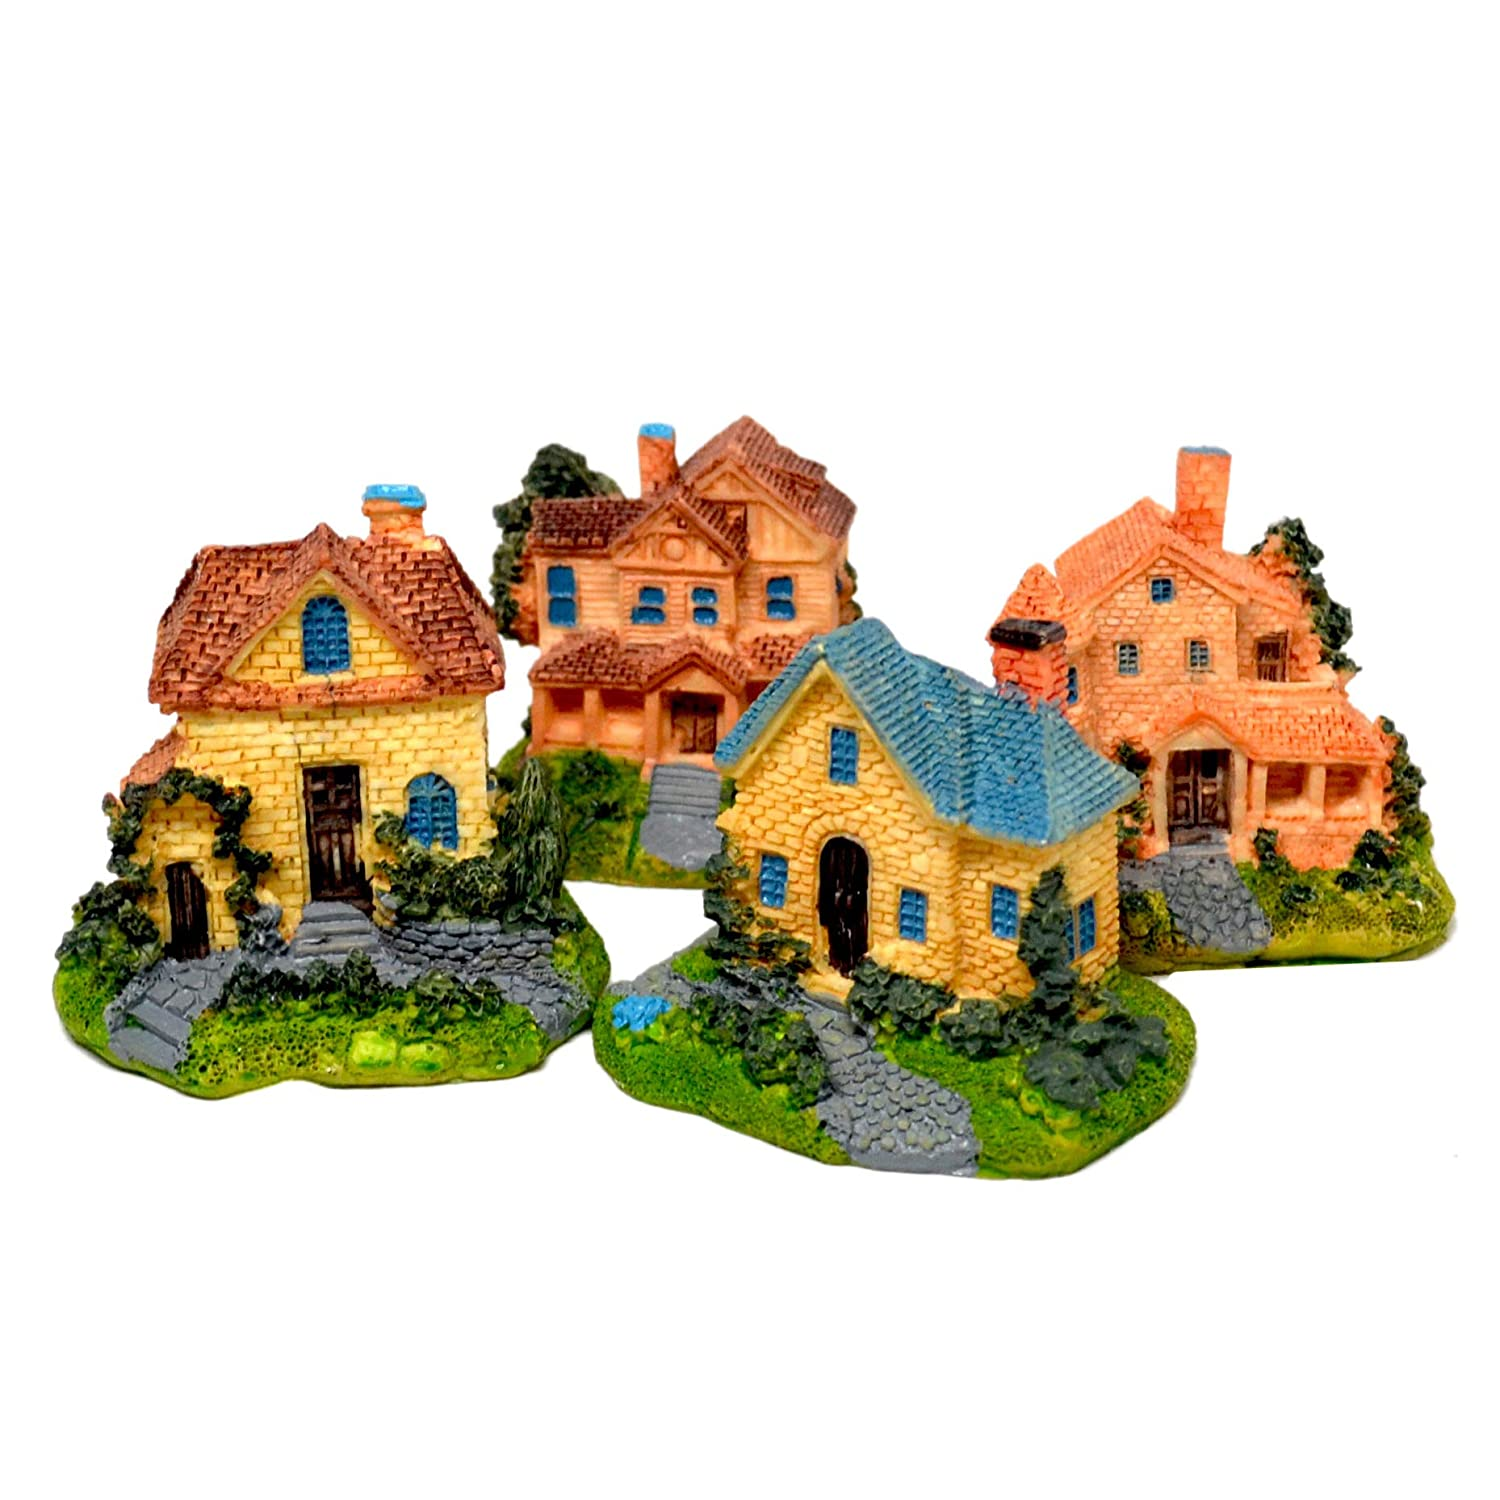 Pixie Glare Miniature Houses. Colonial Detailed Realistic Look (4 Pack)